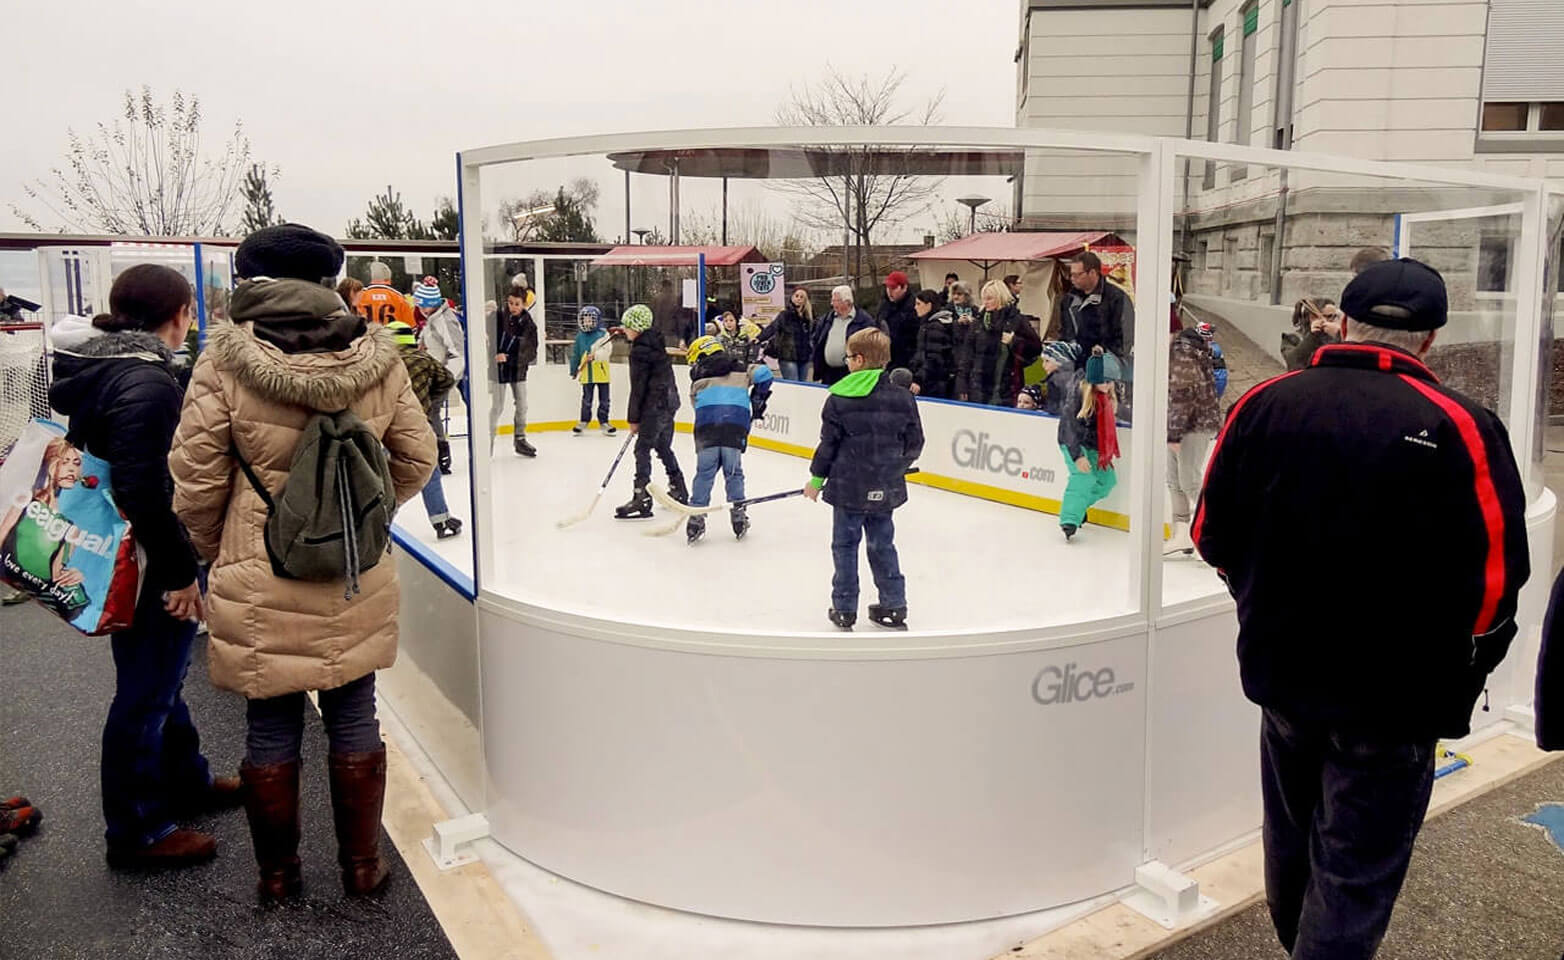 Plastic ice rink mini arena in city center